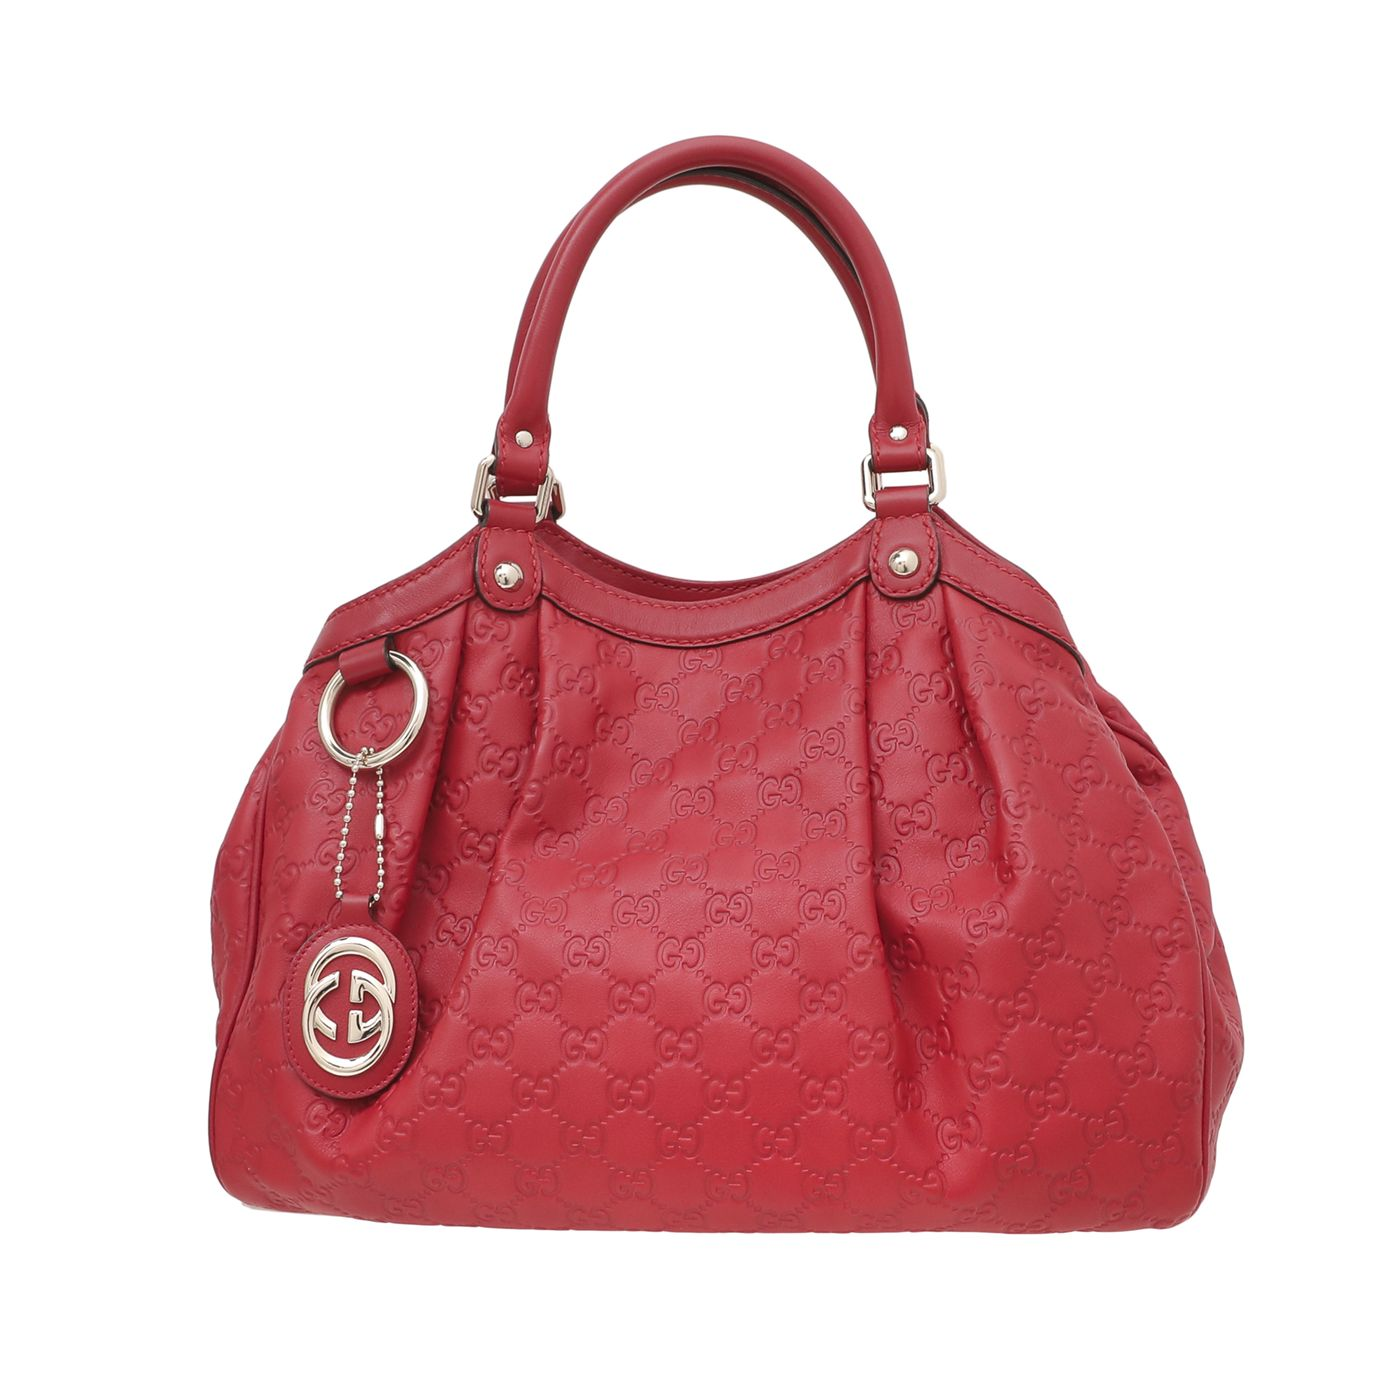 Gucci Red Macy's Geral Square Exclusive Sukey Bag